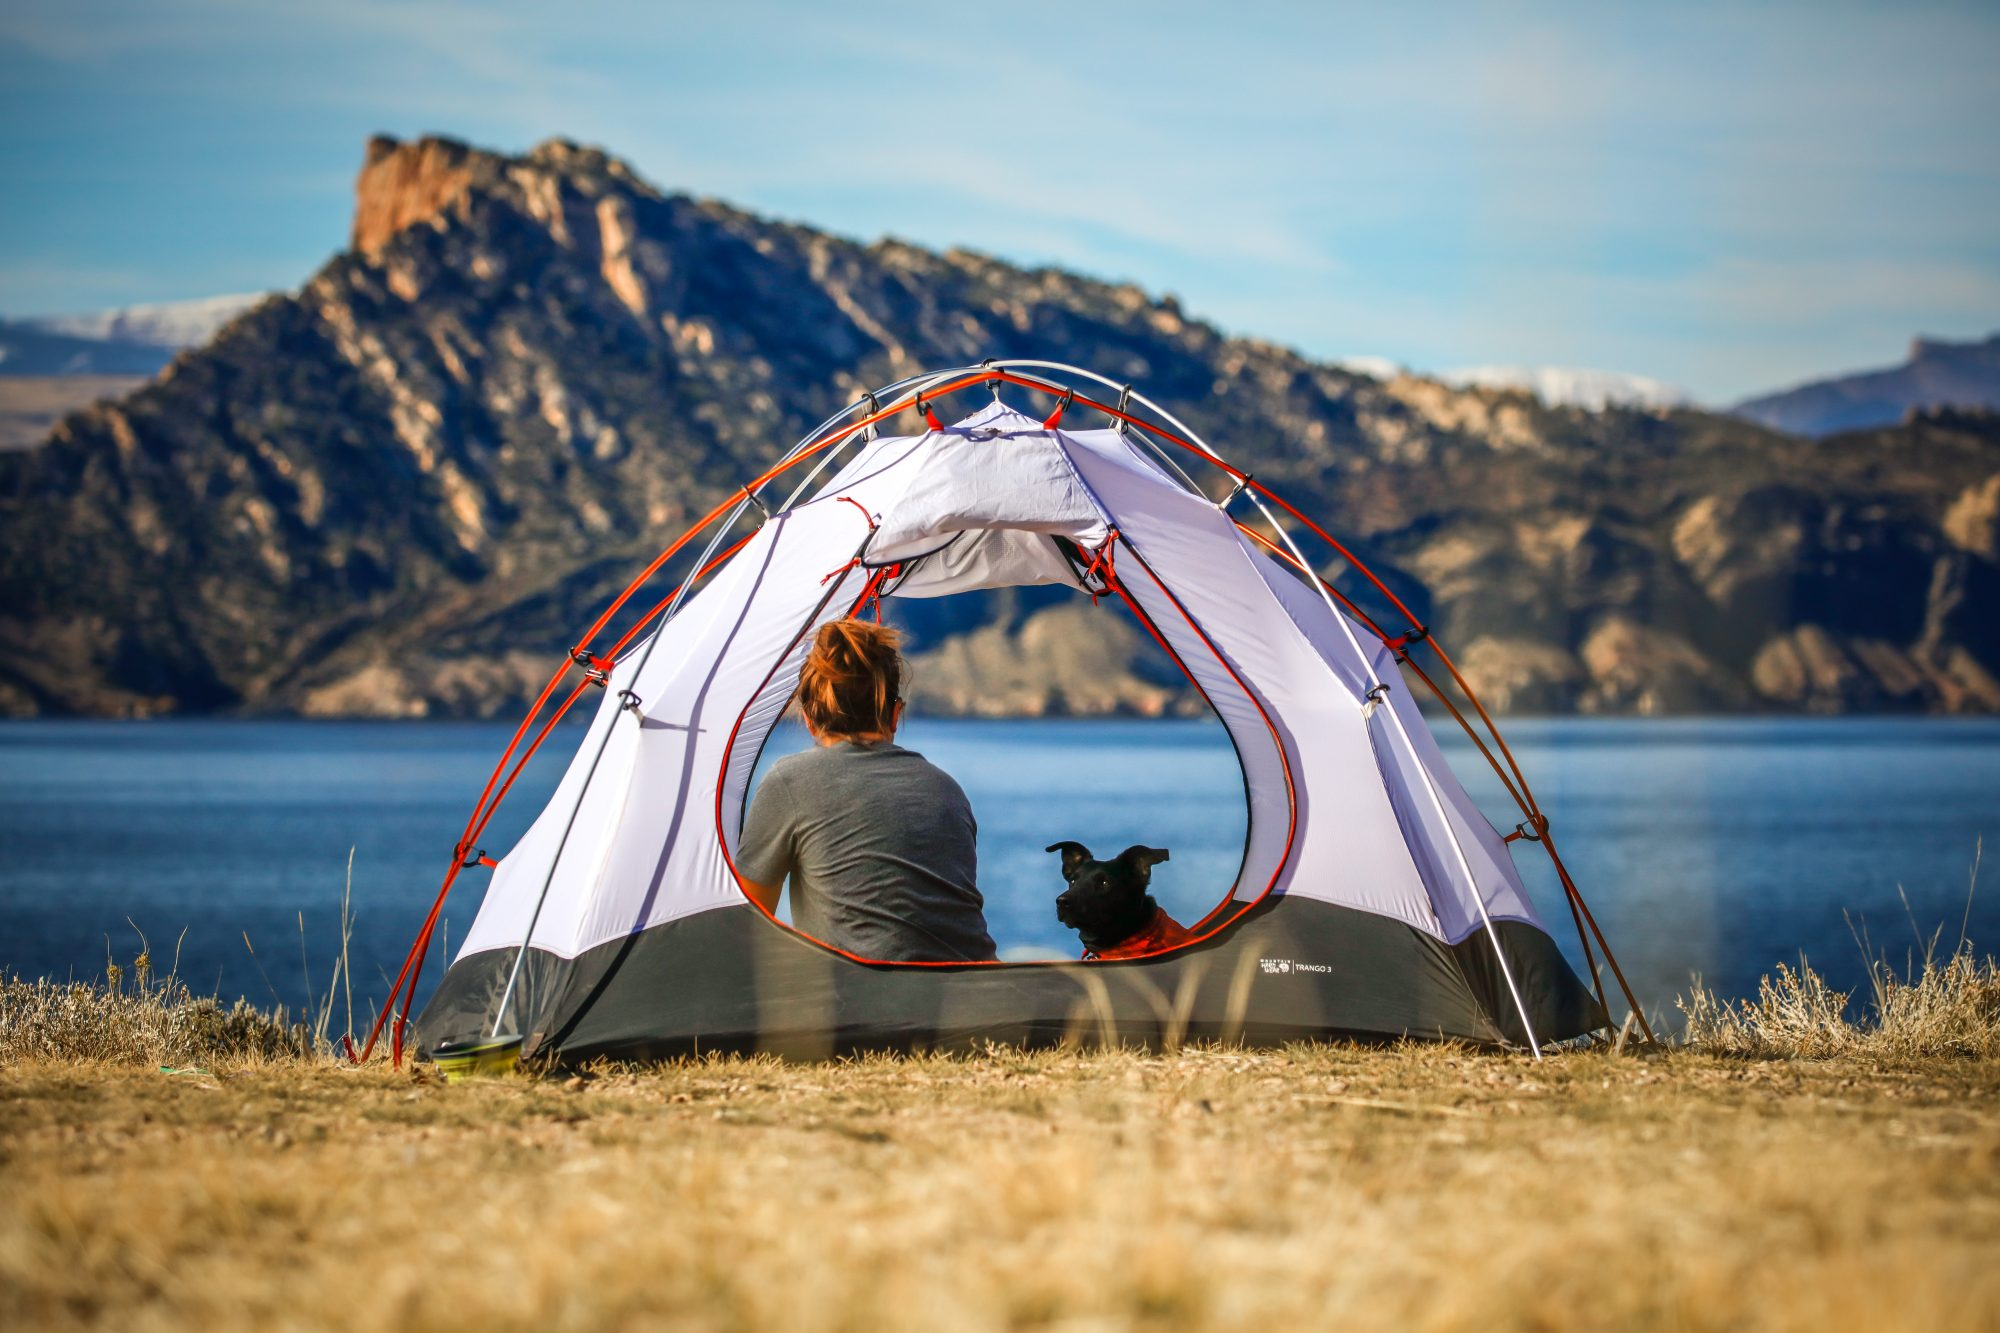 The 24 Most Scenic Places to Camp in the United States